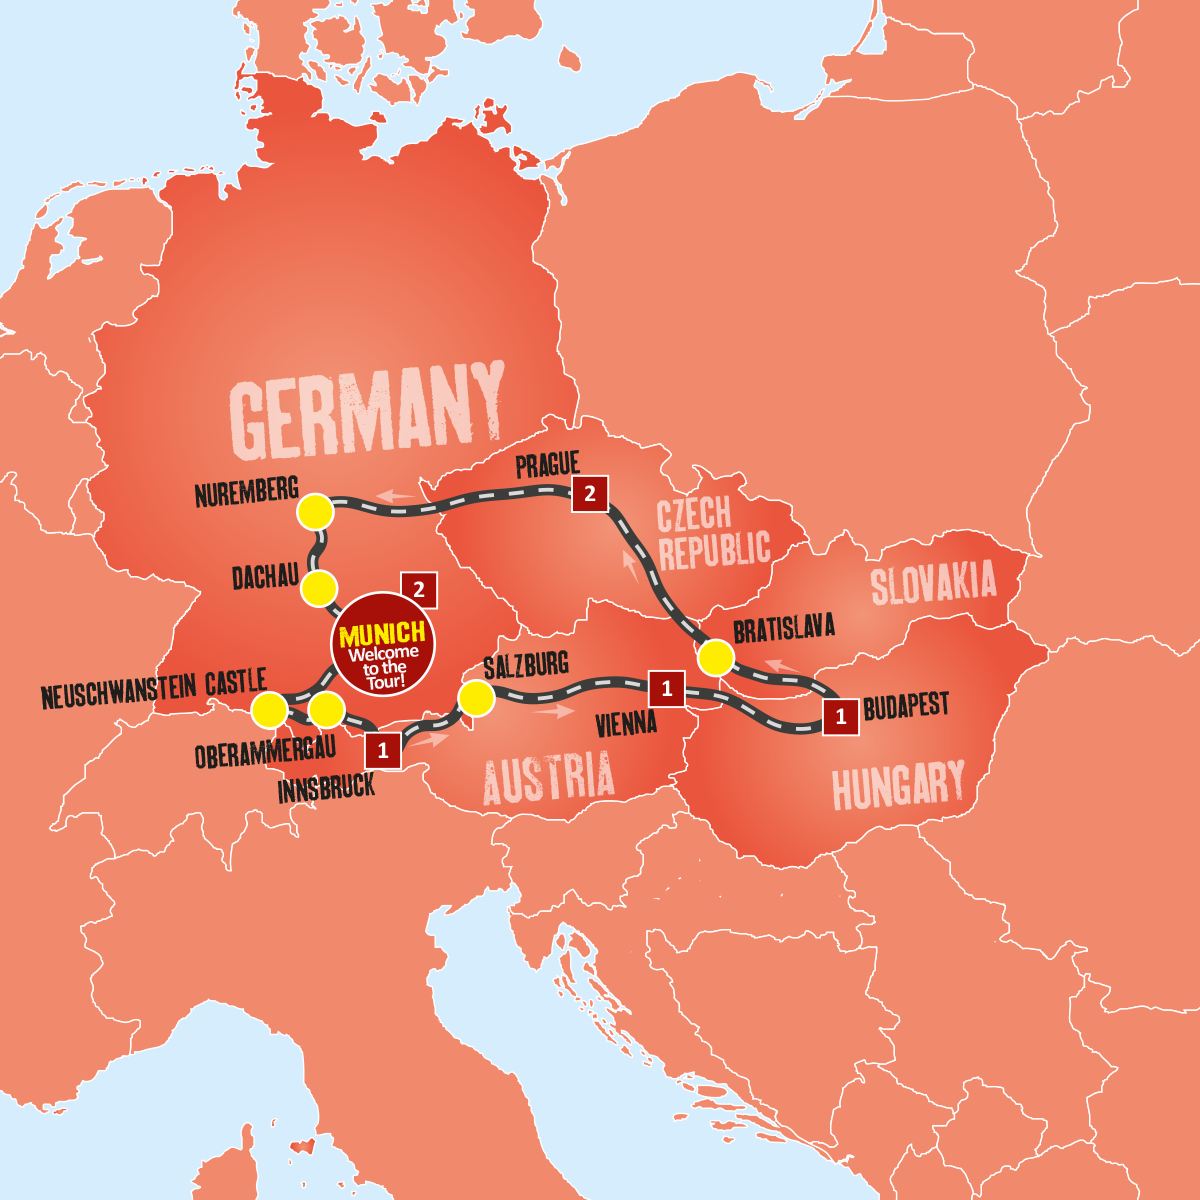 Eastern Europe Coach Tours